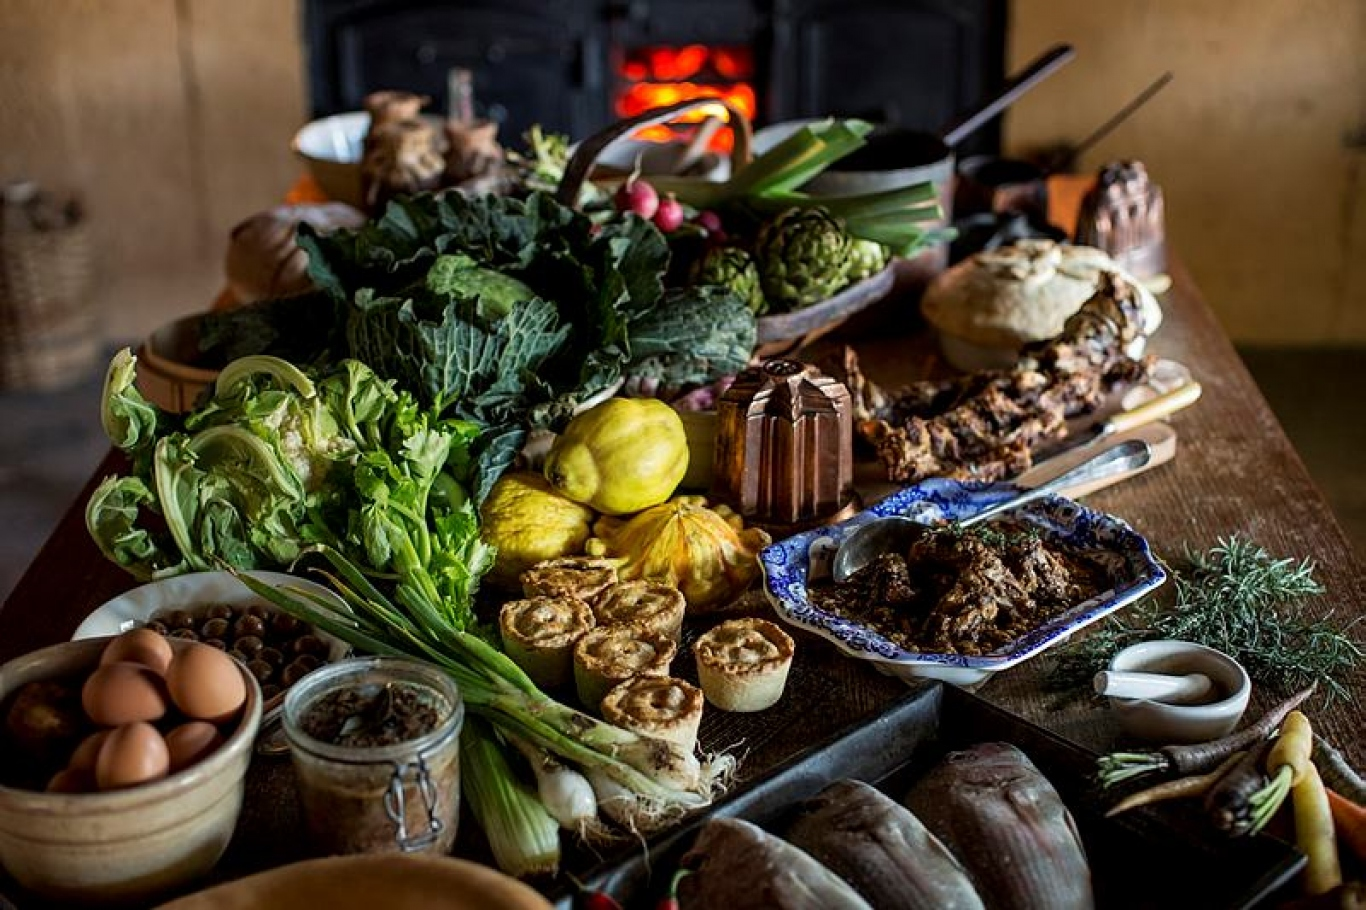 A feast of ingredients in the kitchen at Elizabeth Farm